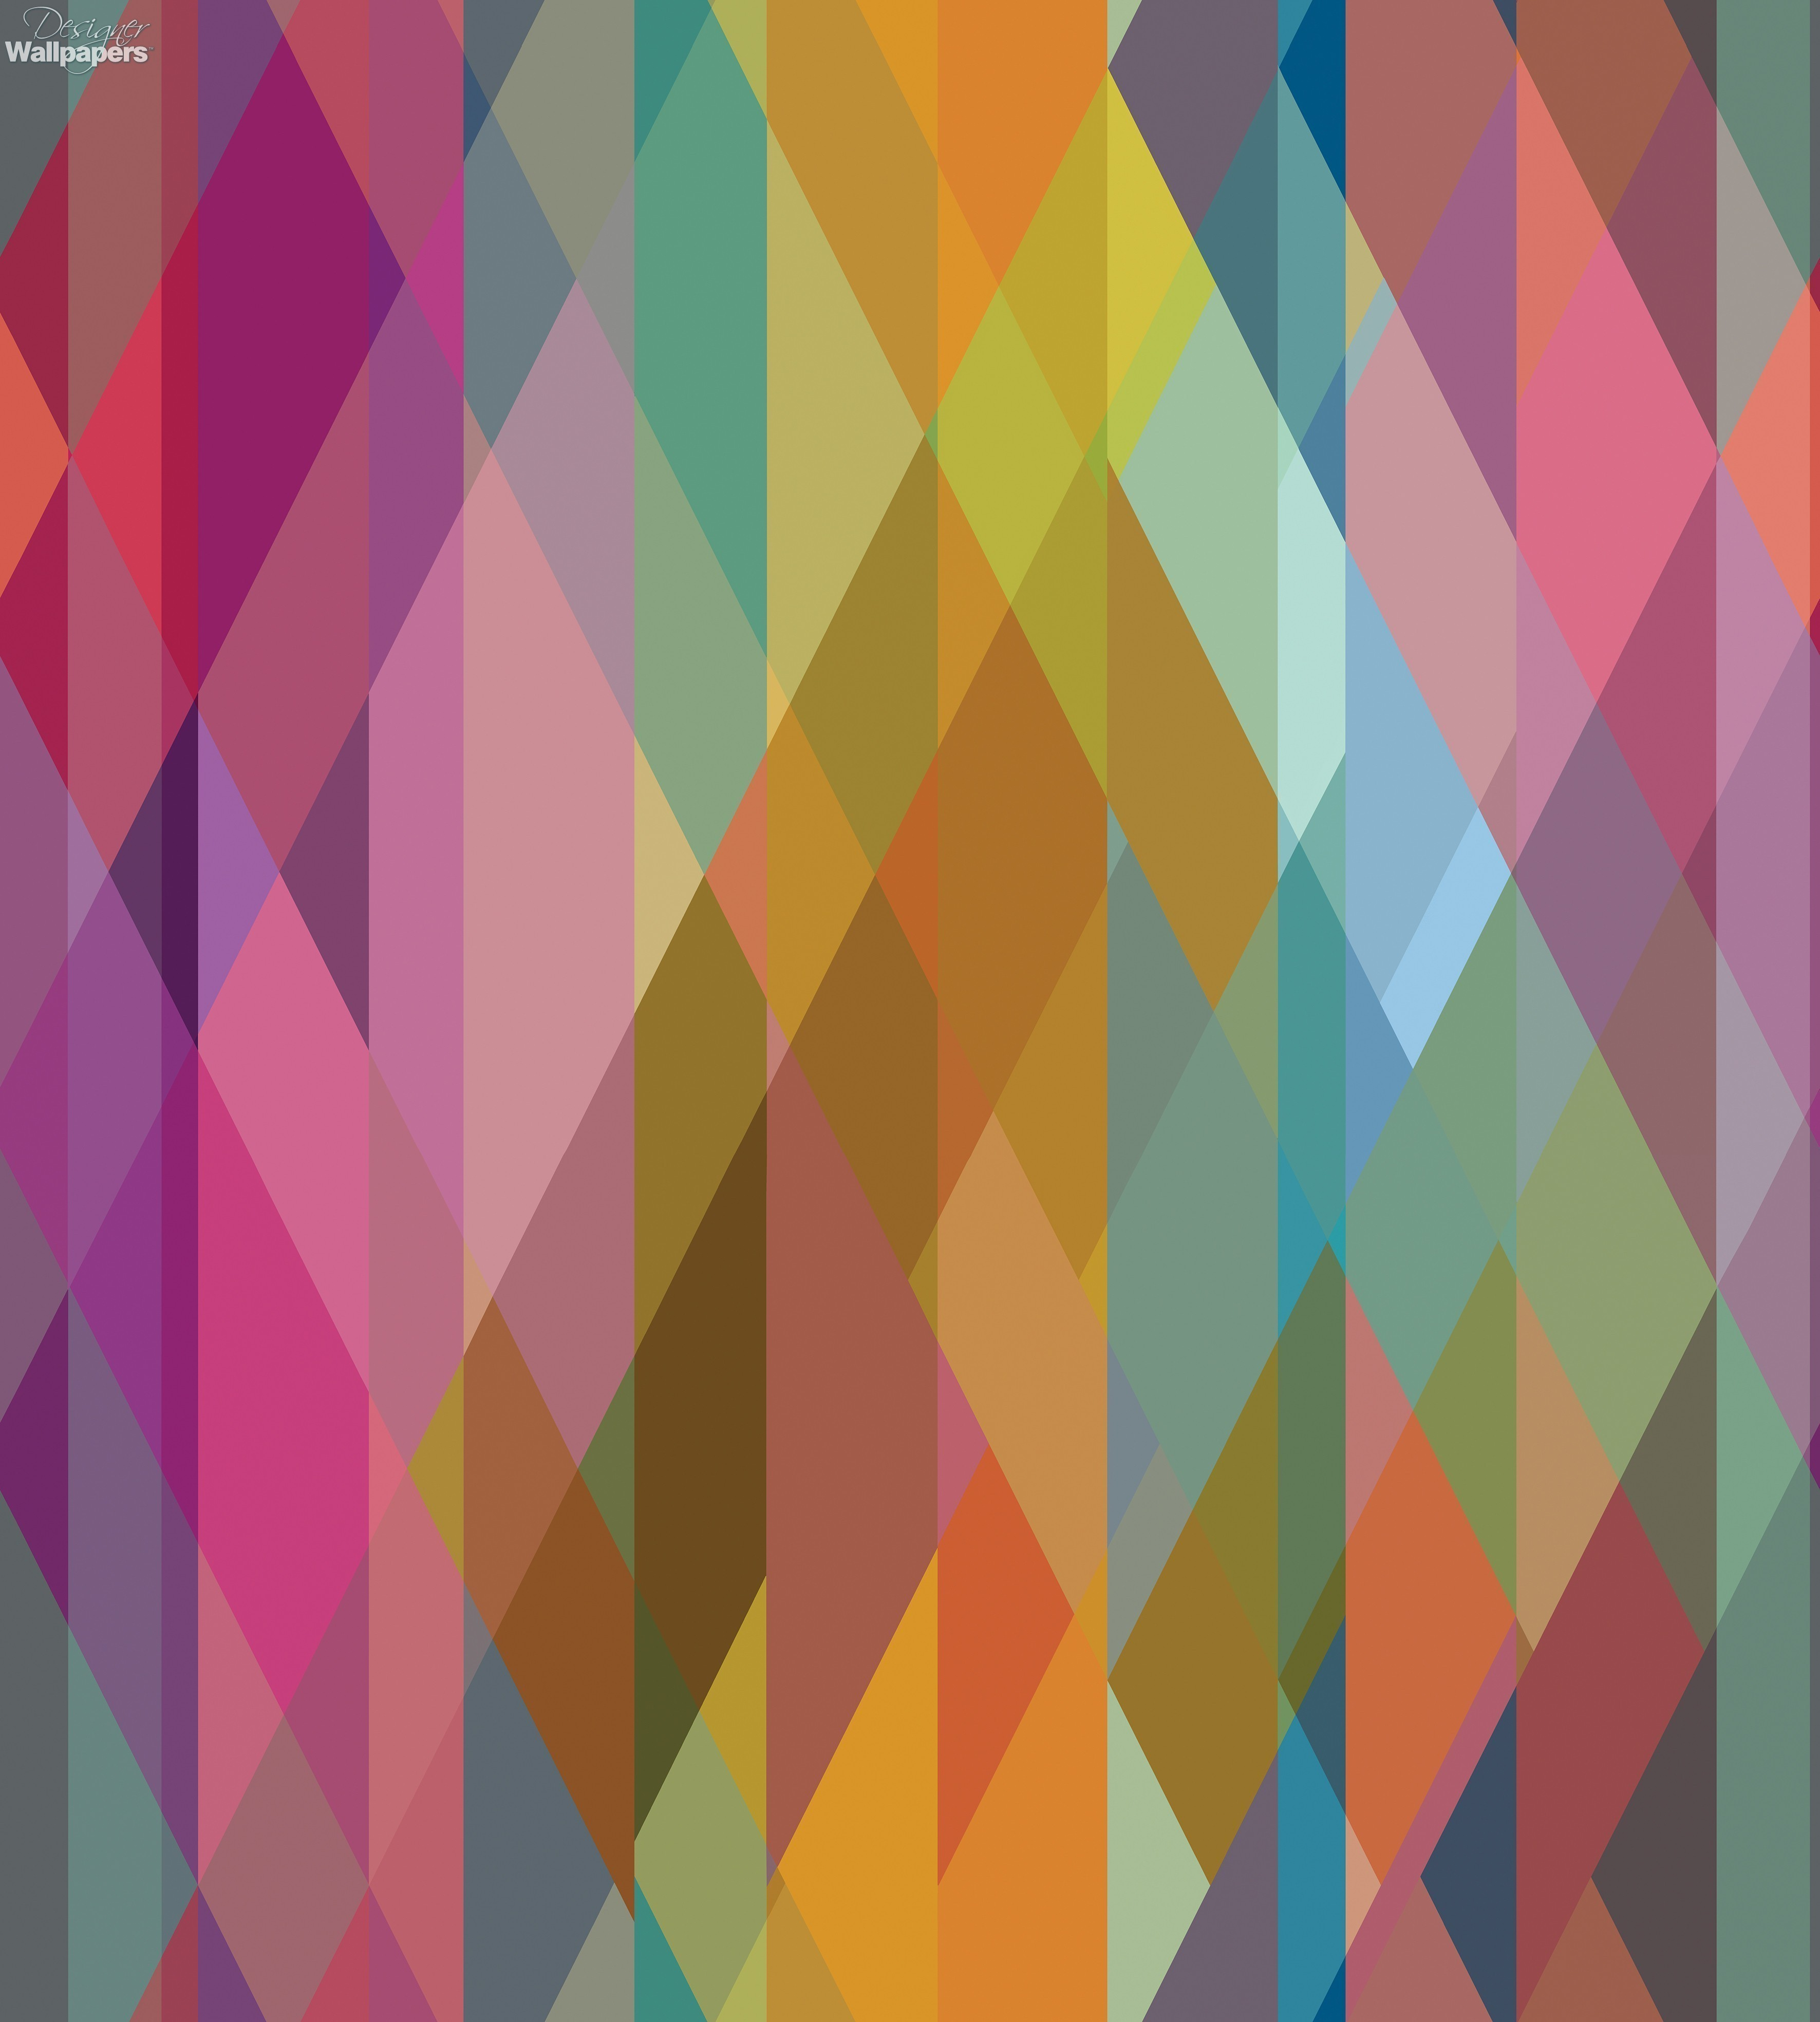 Free Colorful Geometric Wallpaper: Buy Cole And Son Prism - Free Next Day Delivery